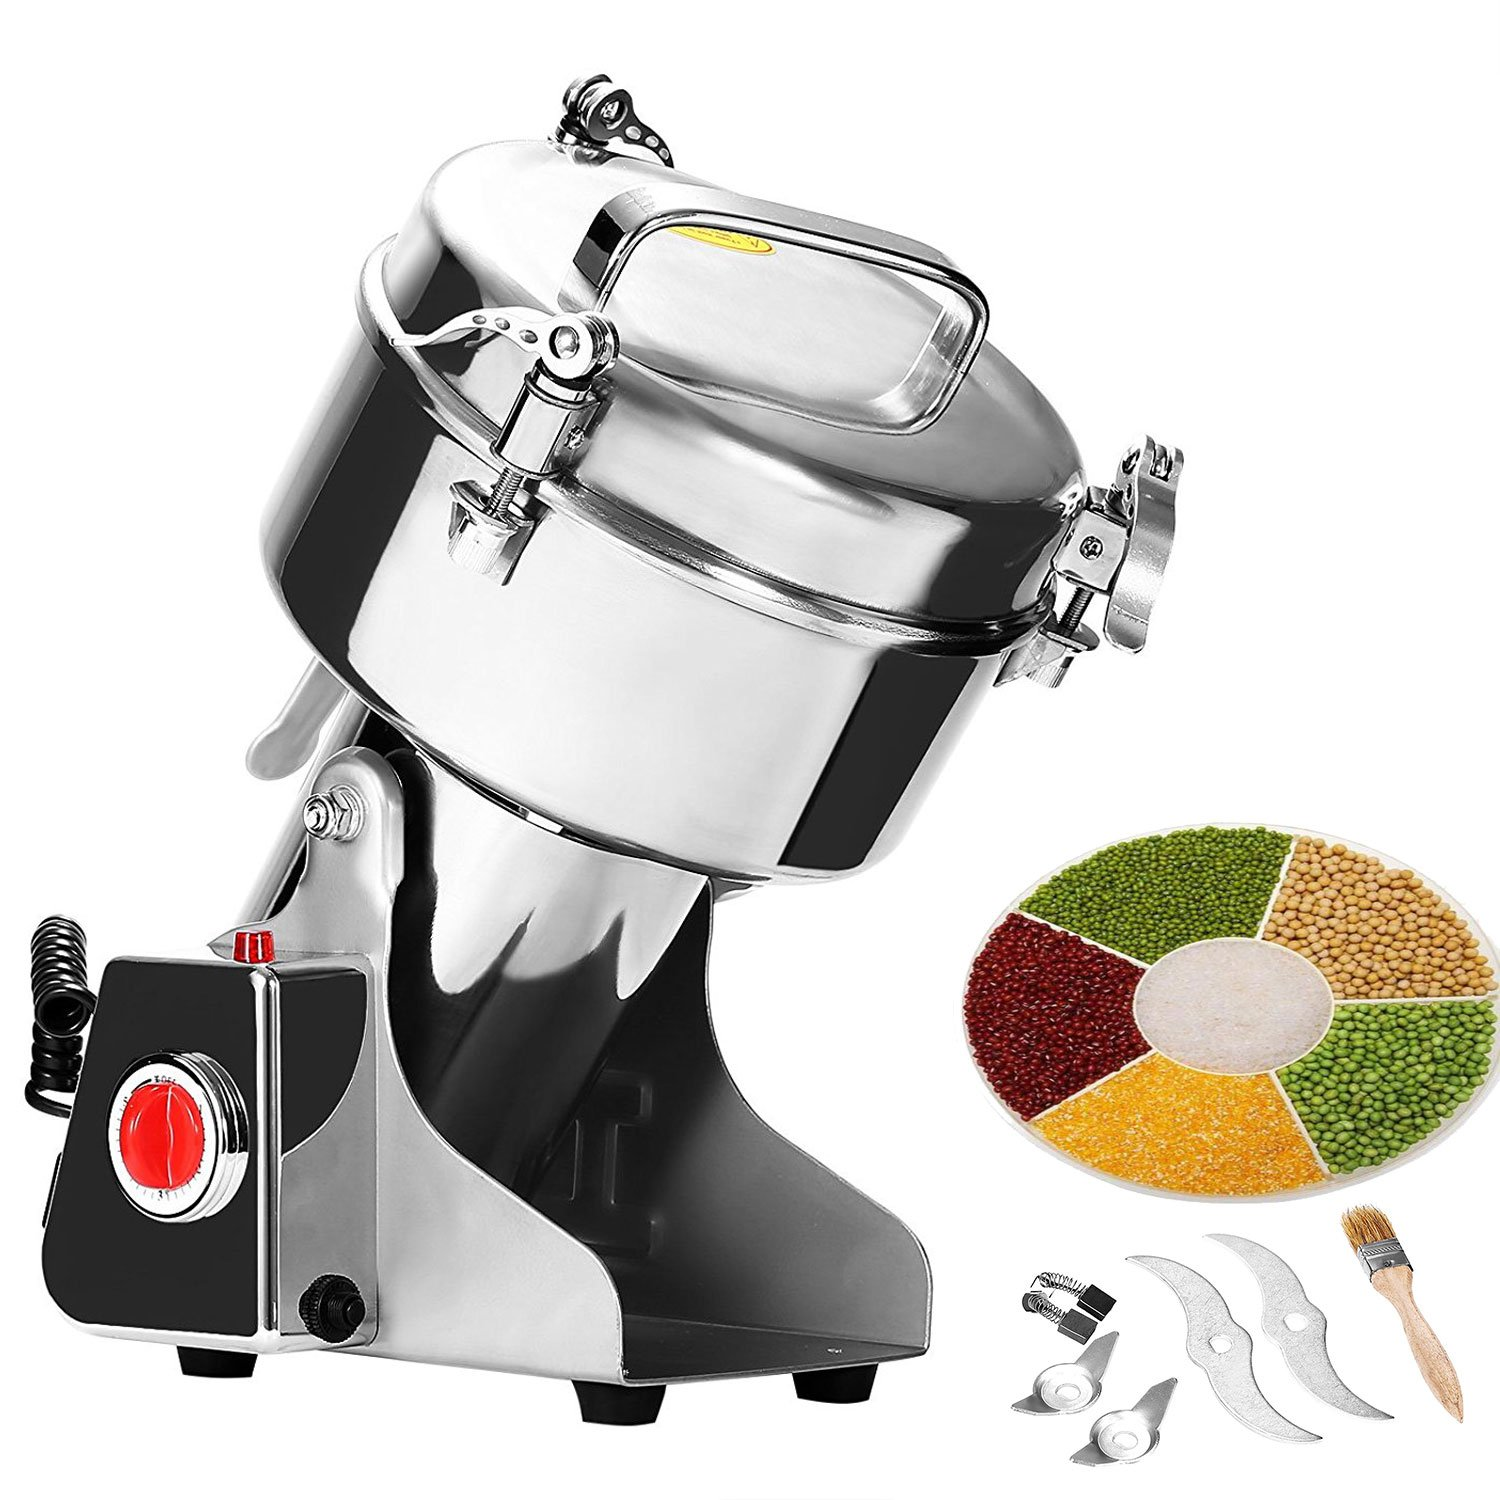 Happybuy Grain Grinder 1000g Mill Powder Machine Swing Type Commercial Electric Grain Mill Grinder for Herb Pulverizer Food Grade Stainless Steel (1000g) by Happybuy